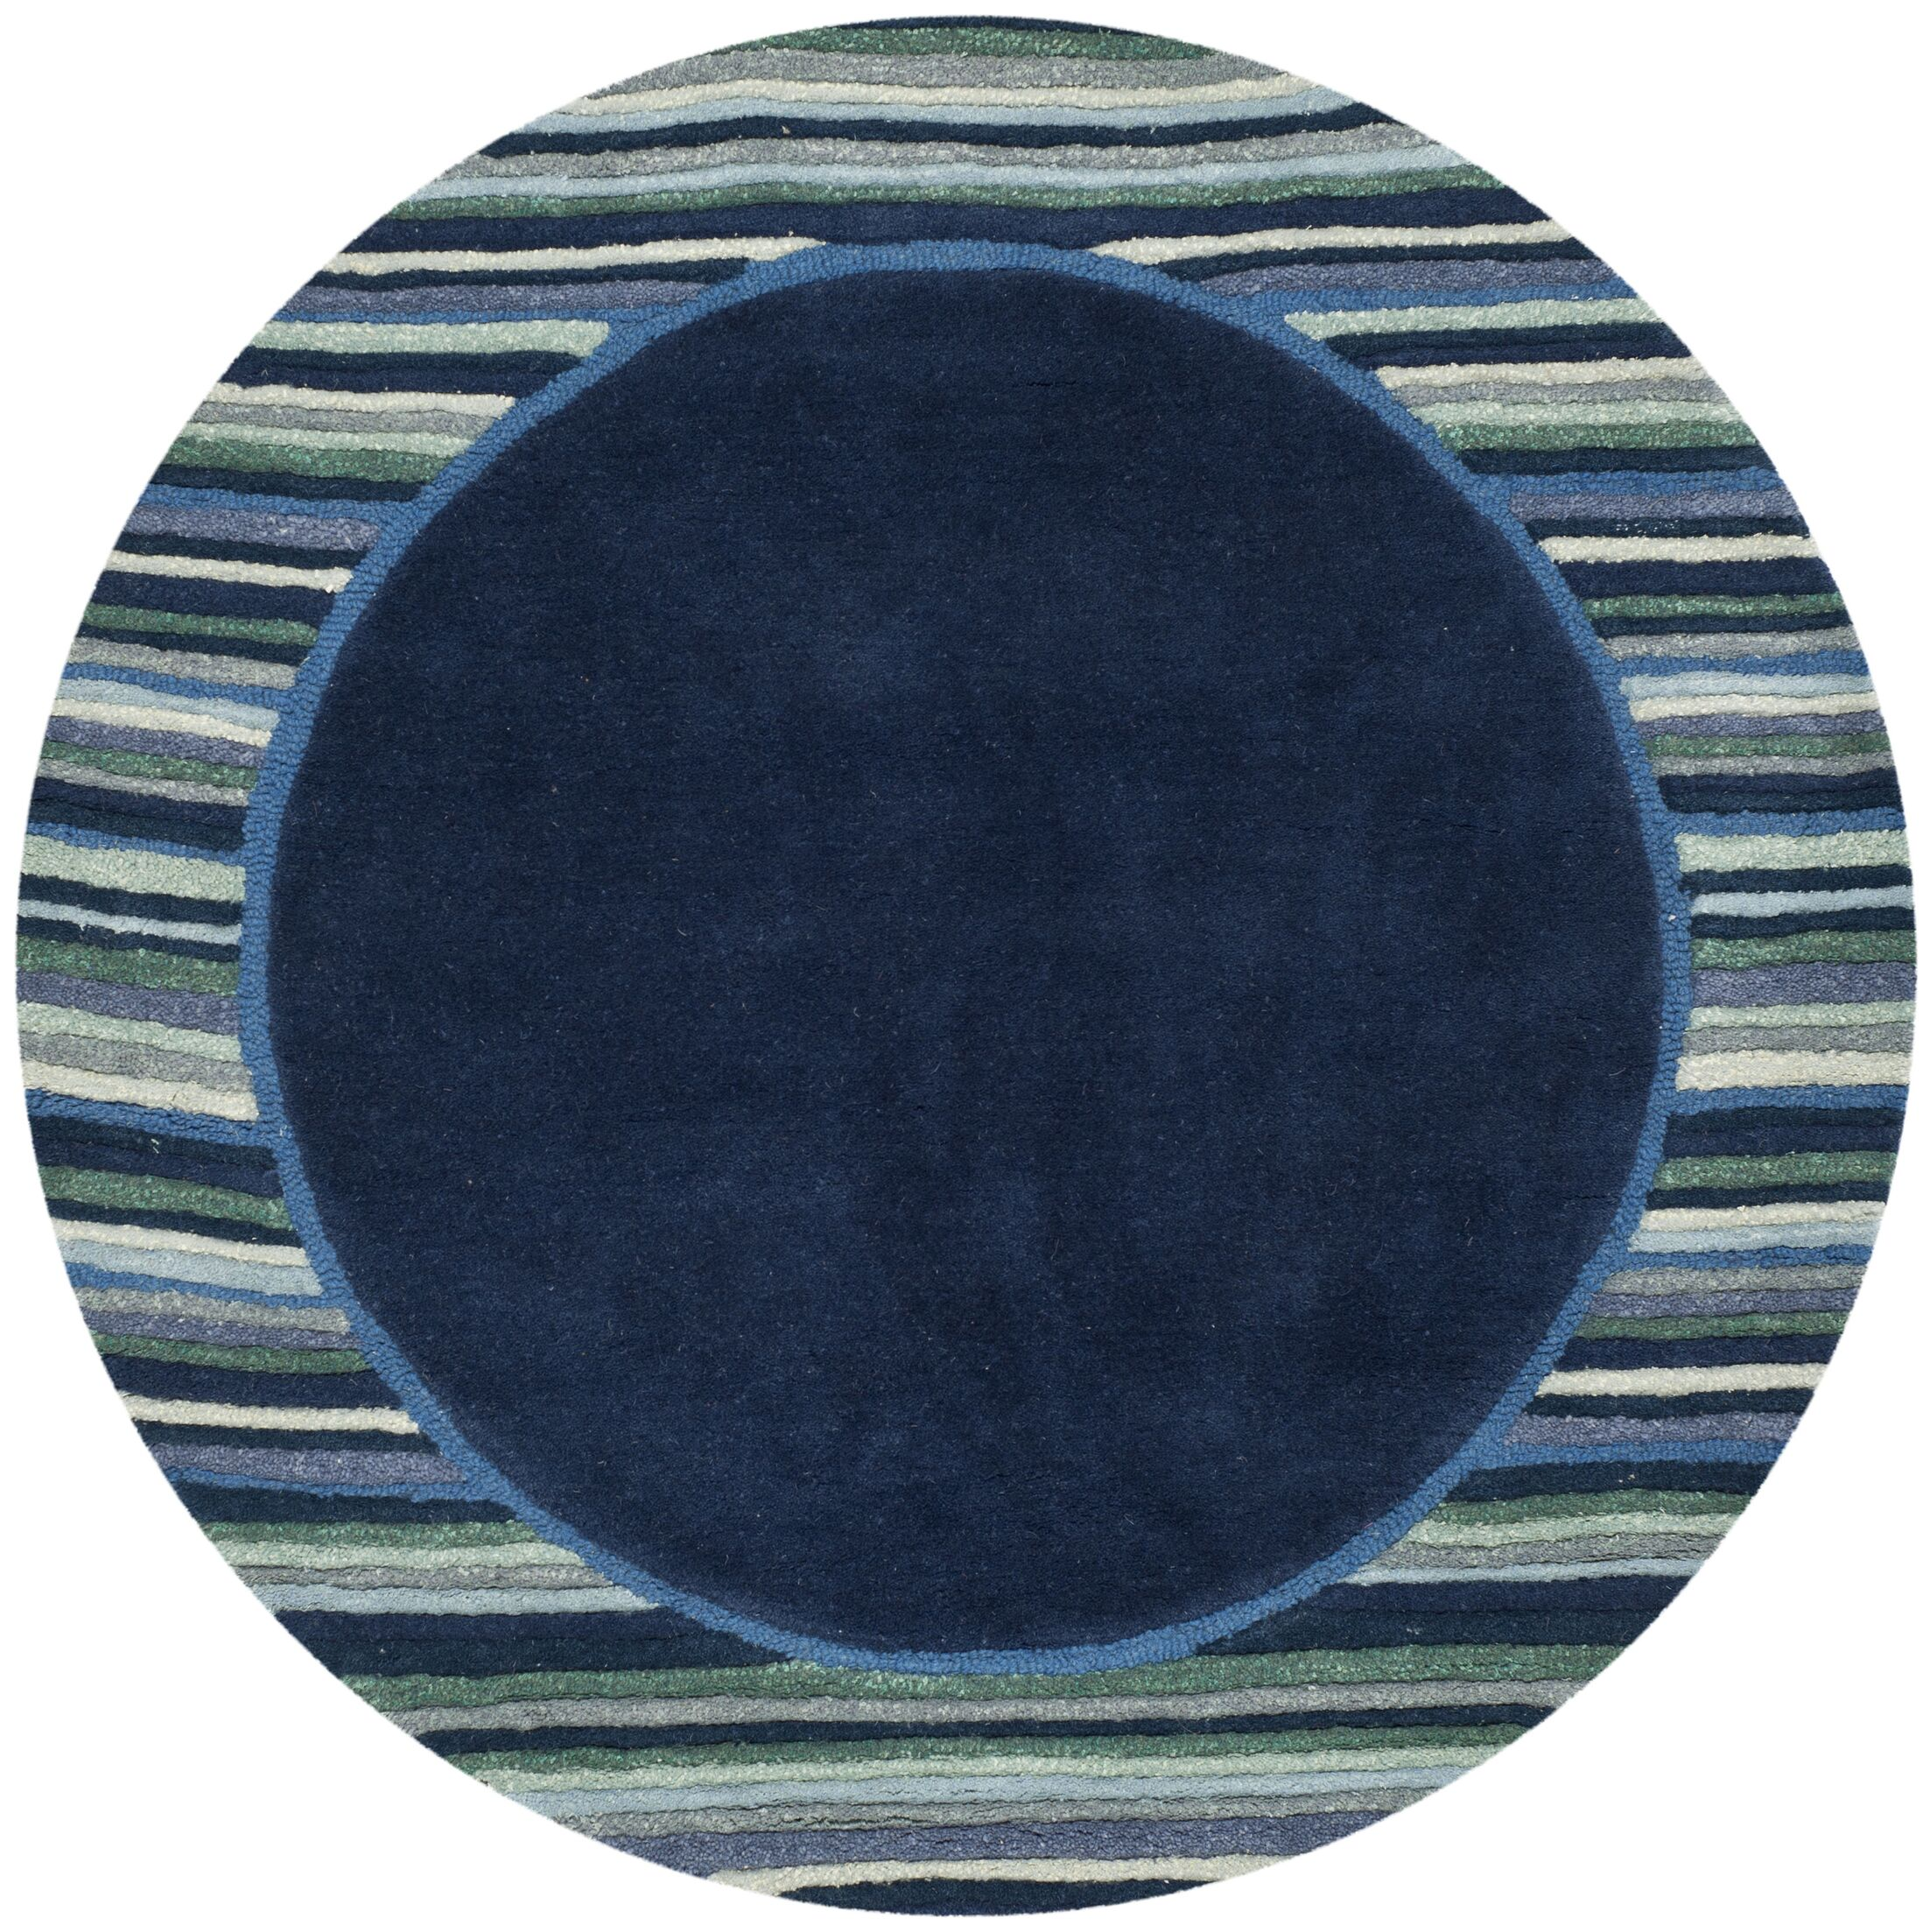 Striped Border Hand-Tufted Wrought Iron Area Rug Rug Size: Round 8' x 8'